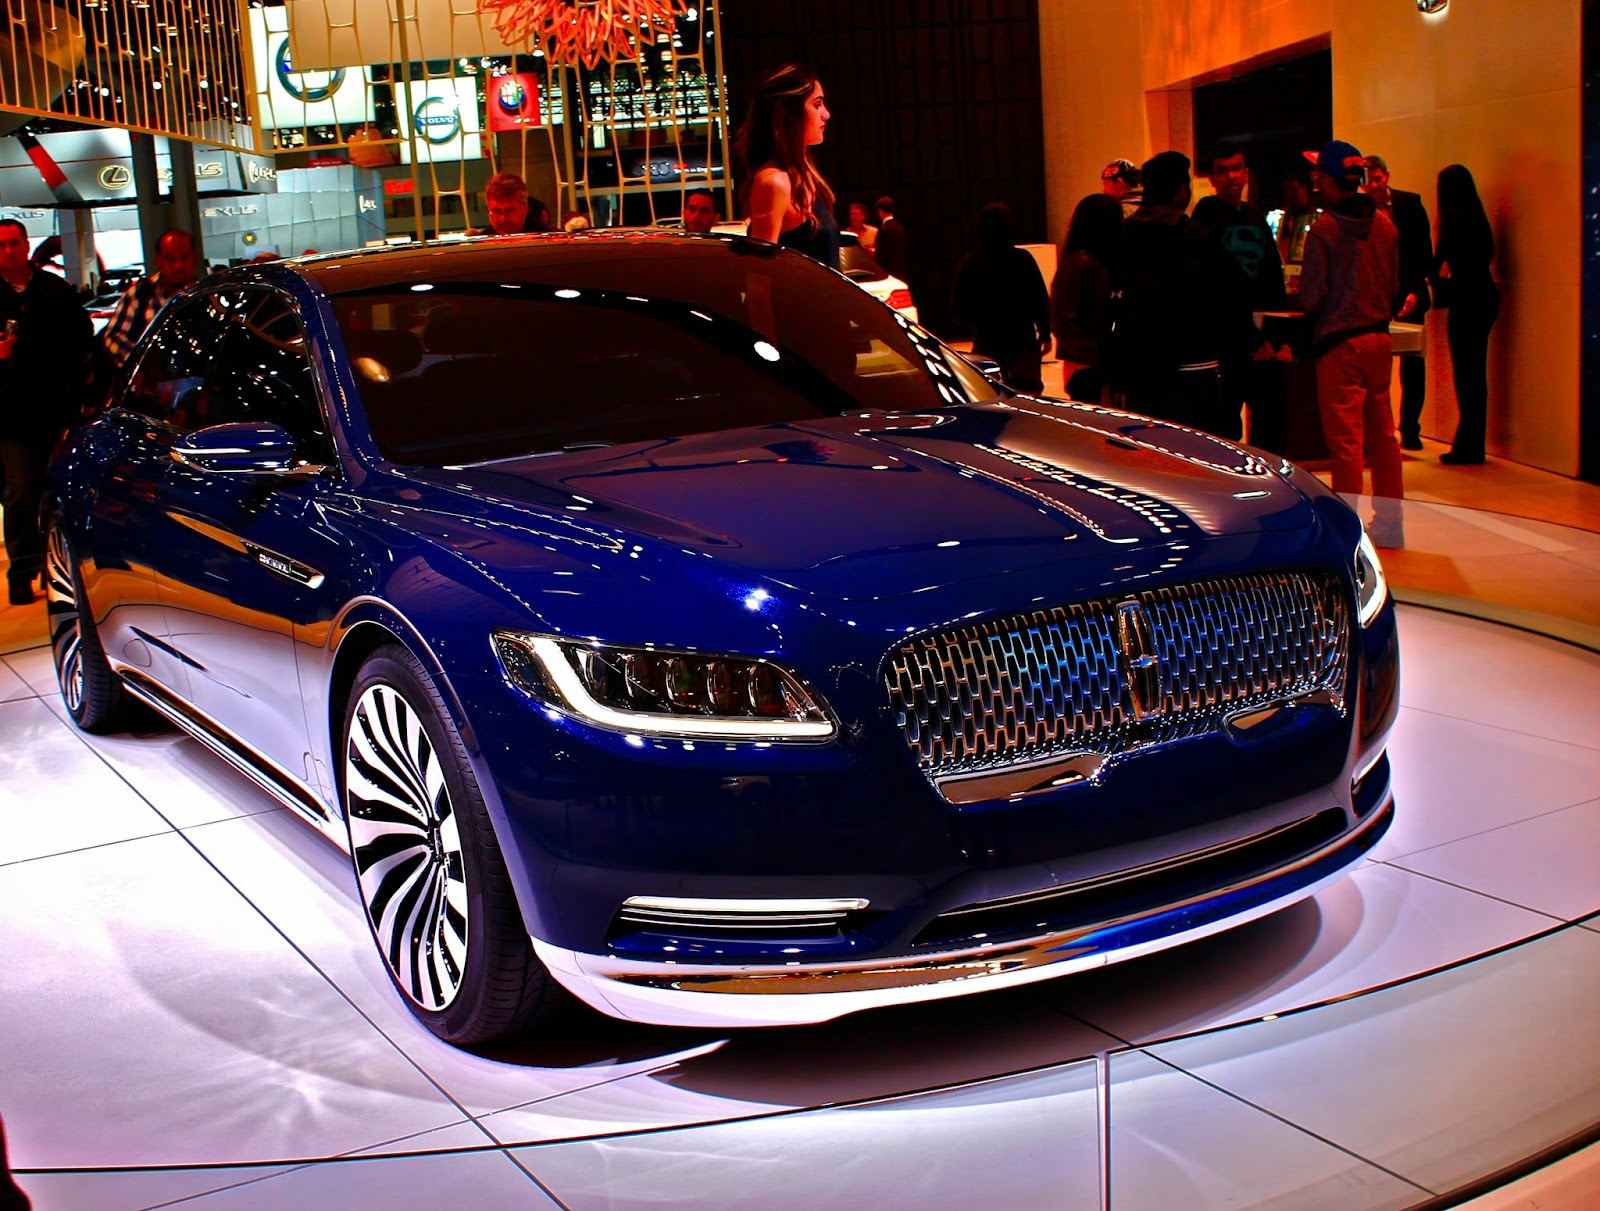 IMG_6870 Outstanding Lincoln Continental New York Auto Show Cars Trend